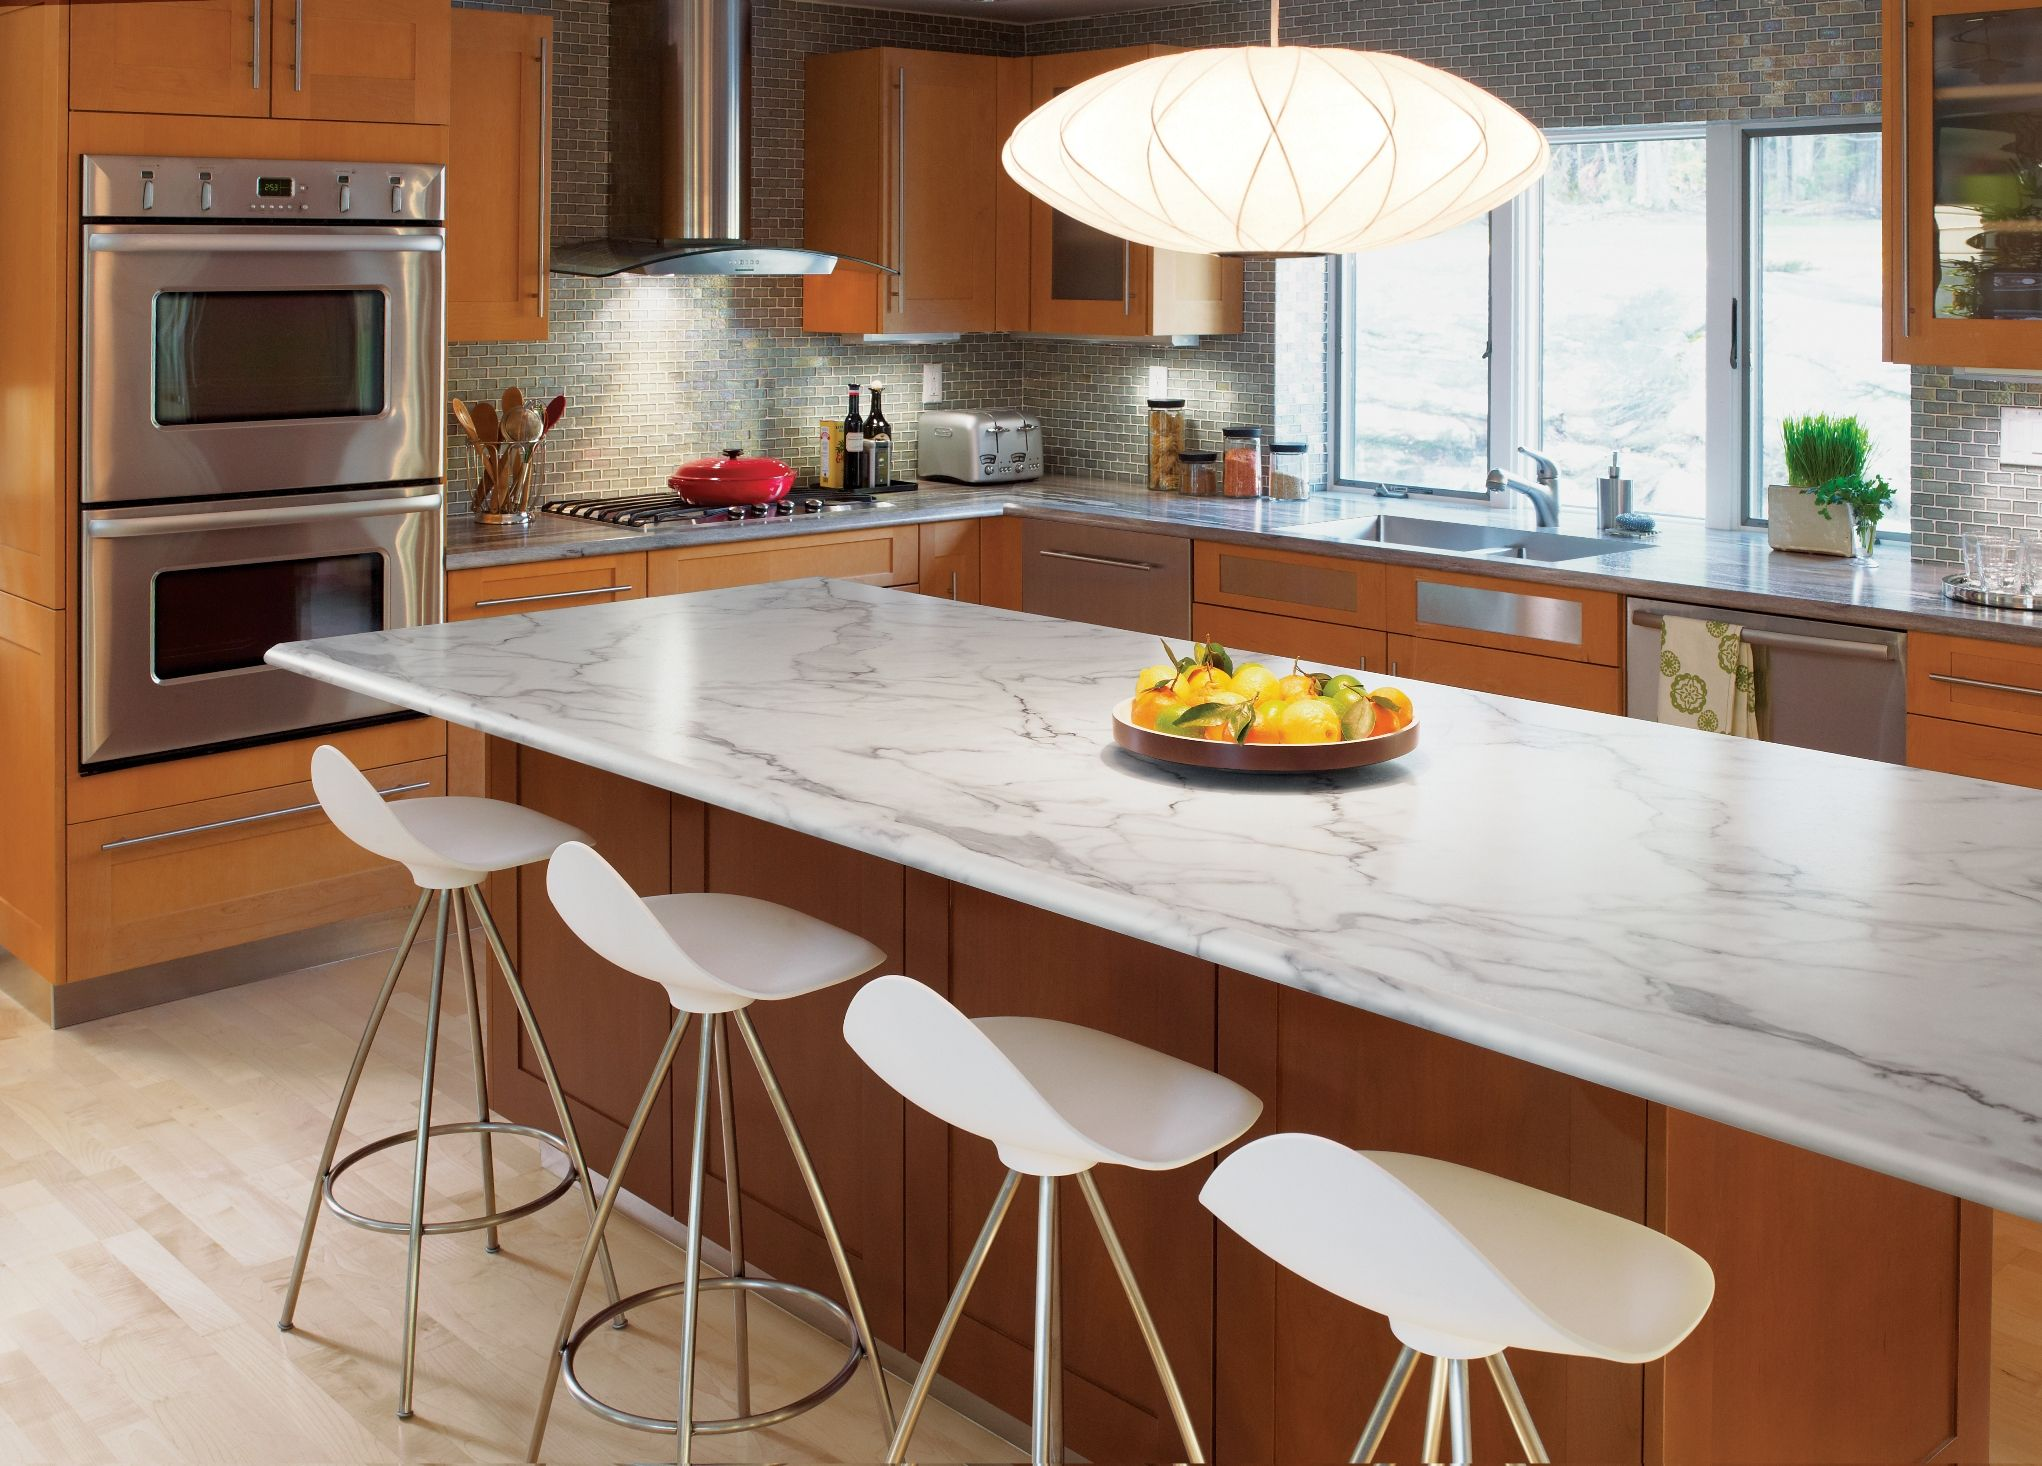 Idealedge 3460 Calacatta Marble Ogee Kitchen Countertop